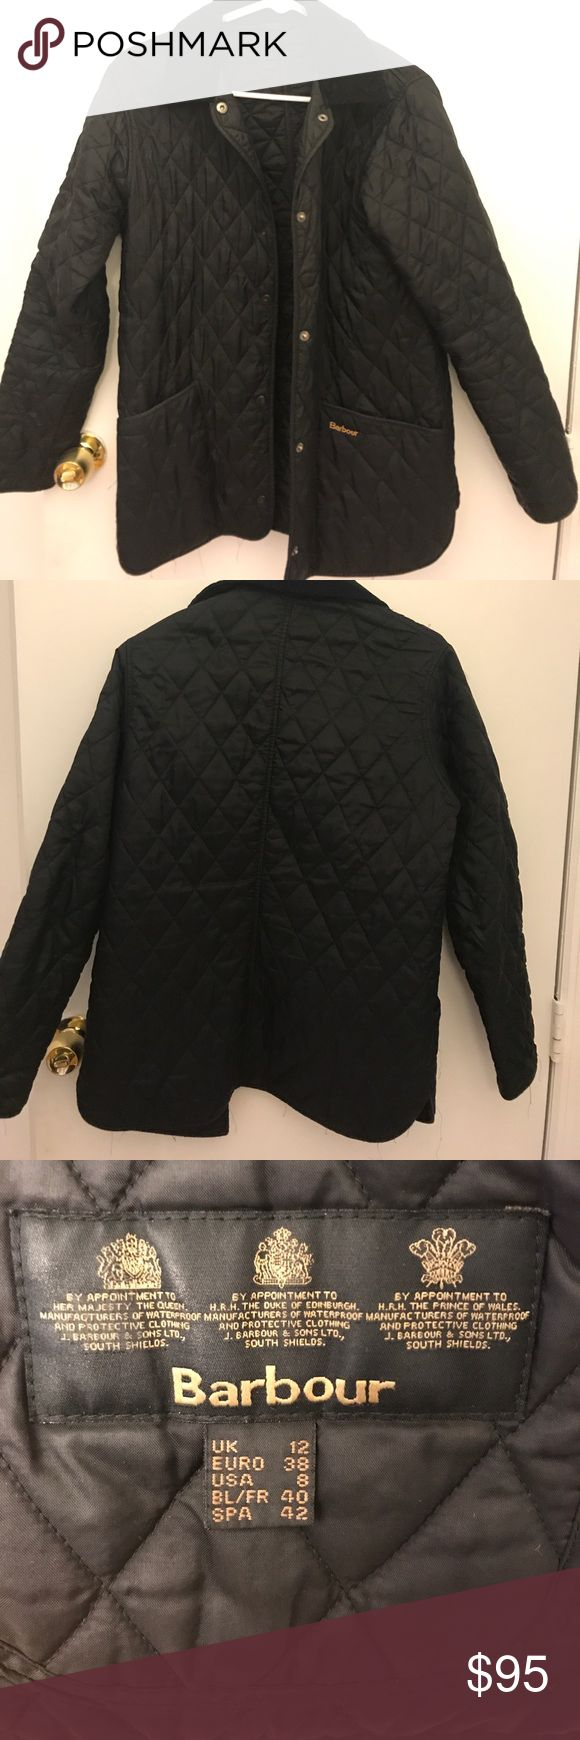 Barbour Quilted Jacket Authentic quilted Barbour jacket. Unfortunately does not fit anymore, otherwise I would keep it forever. Barbour Jackets & Coats